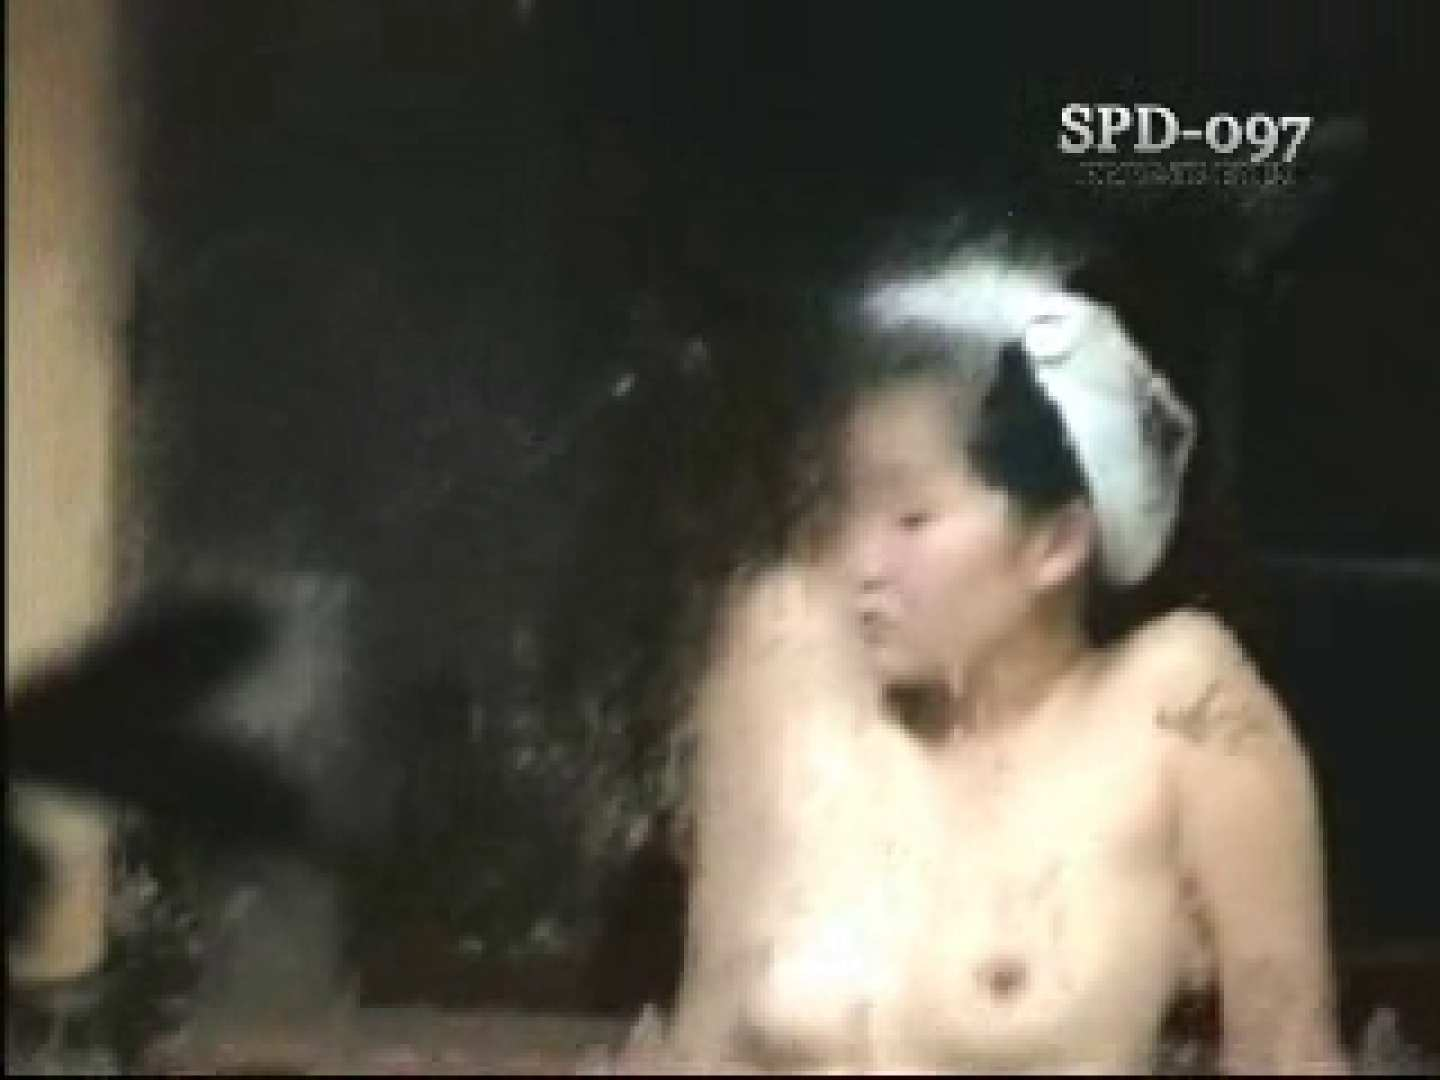 SPD-097 柔肌乙女 2 巨乳 セックス画像 104pic 22